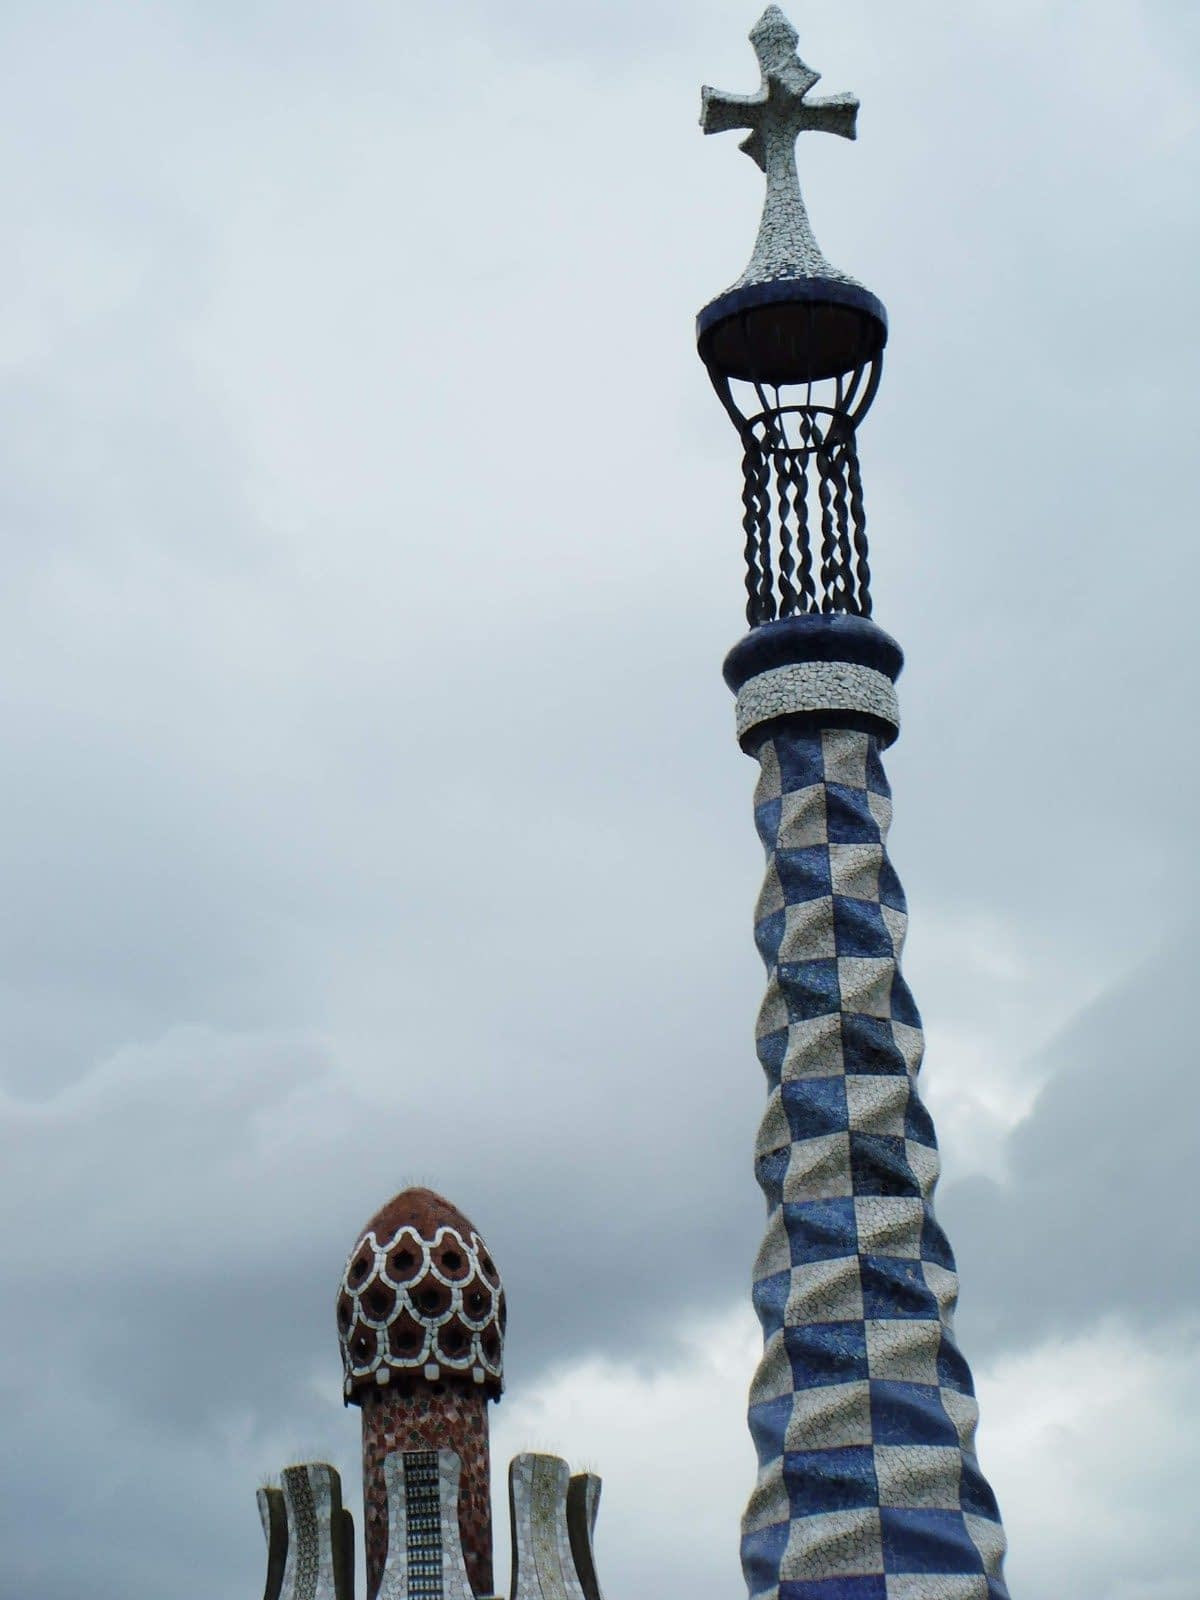 Gaudi's Gingerbread House in Parc Guell Looks Delicious 1